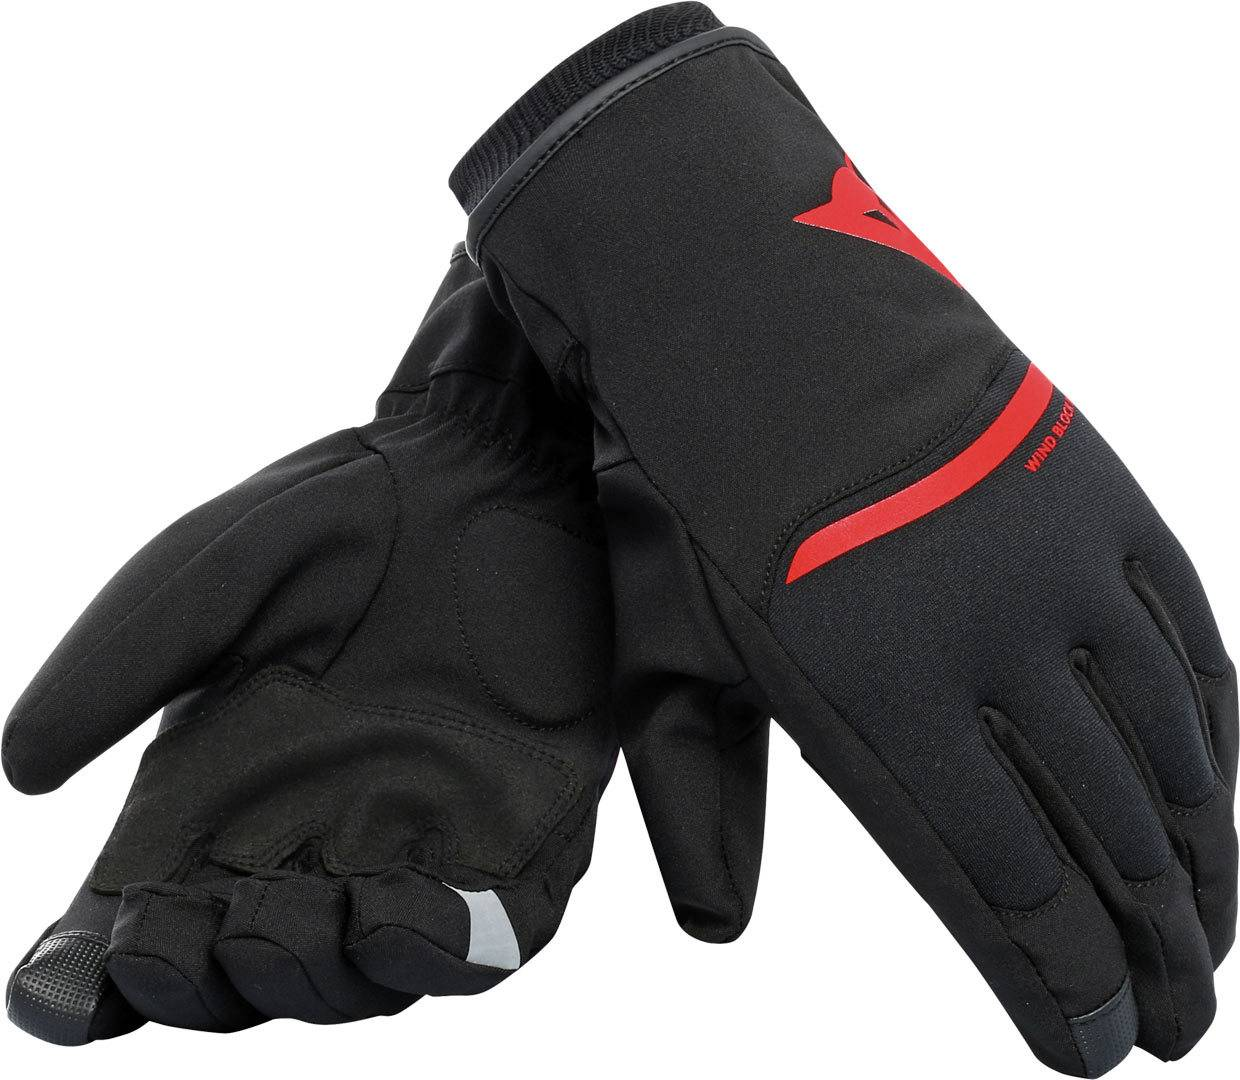 8052644633870 Dainese Plaza 2 D-Dry Guantes Negro/Rojo L